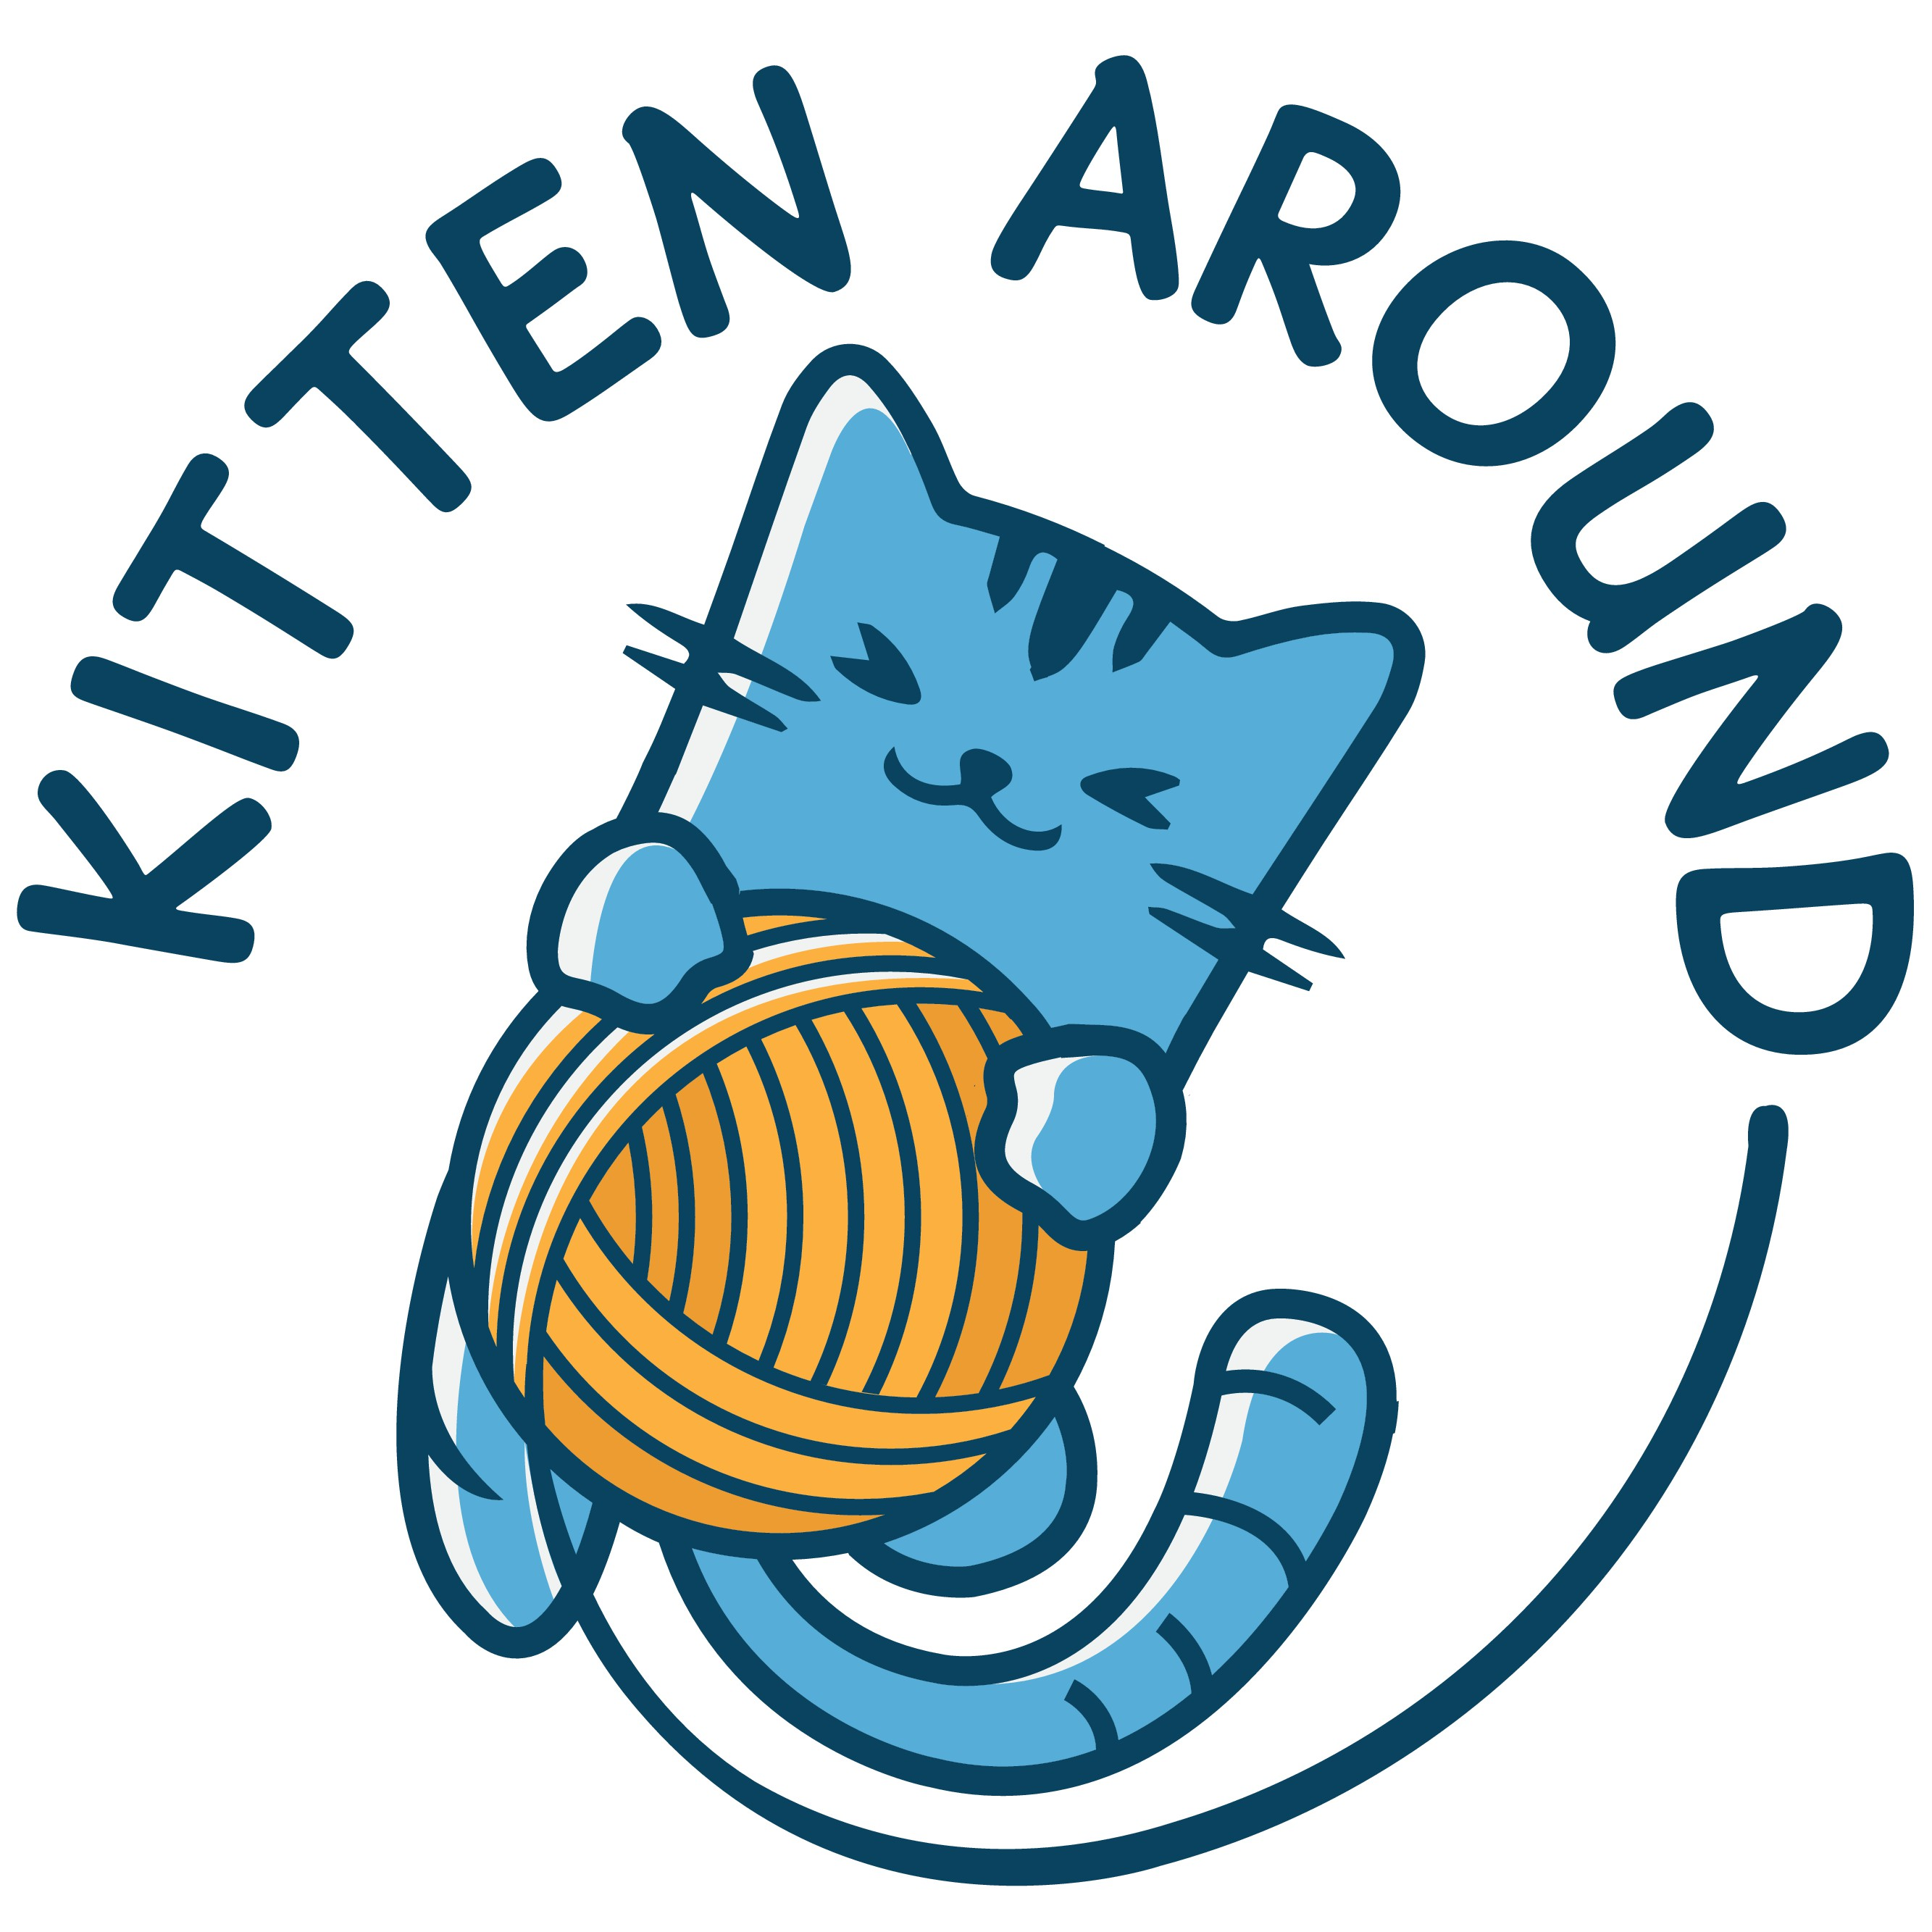 Create a friendly logo for a fun, new cat products company